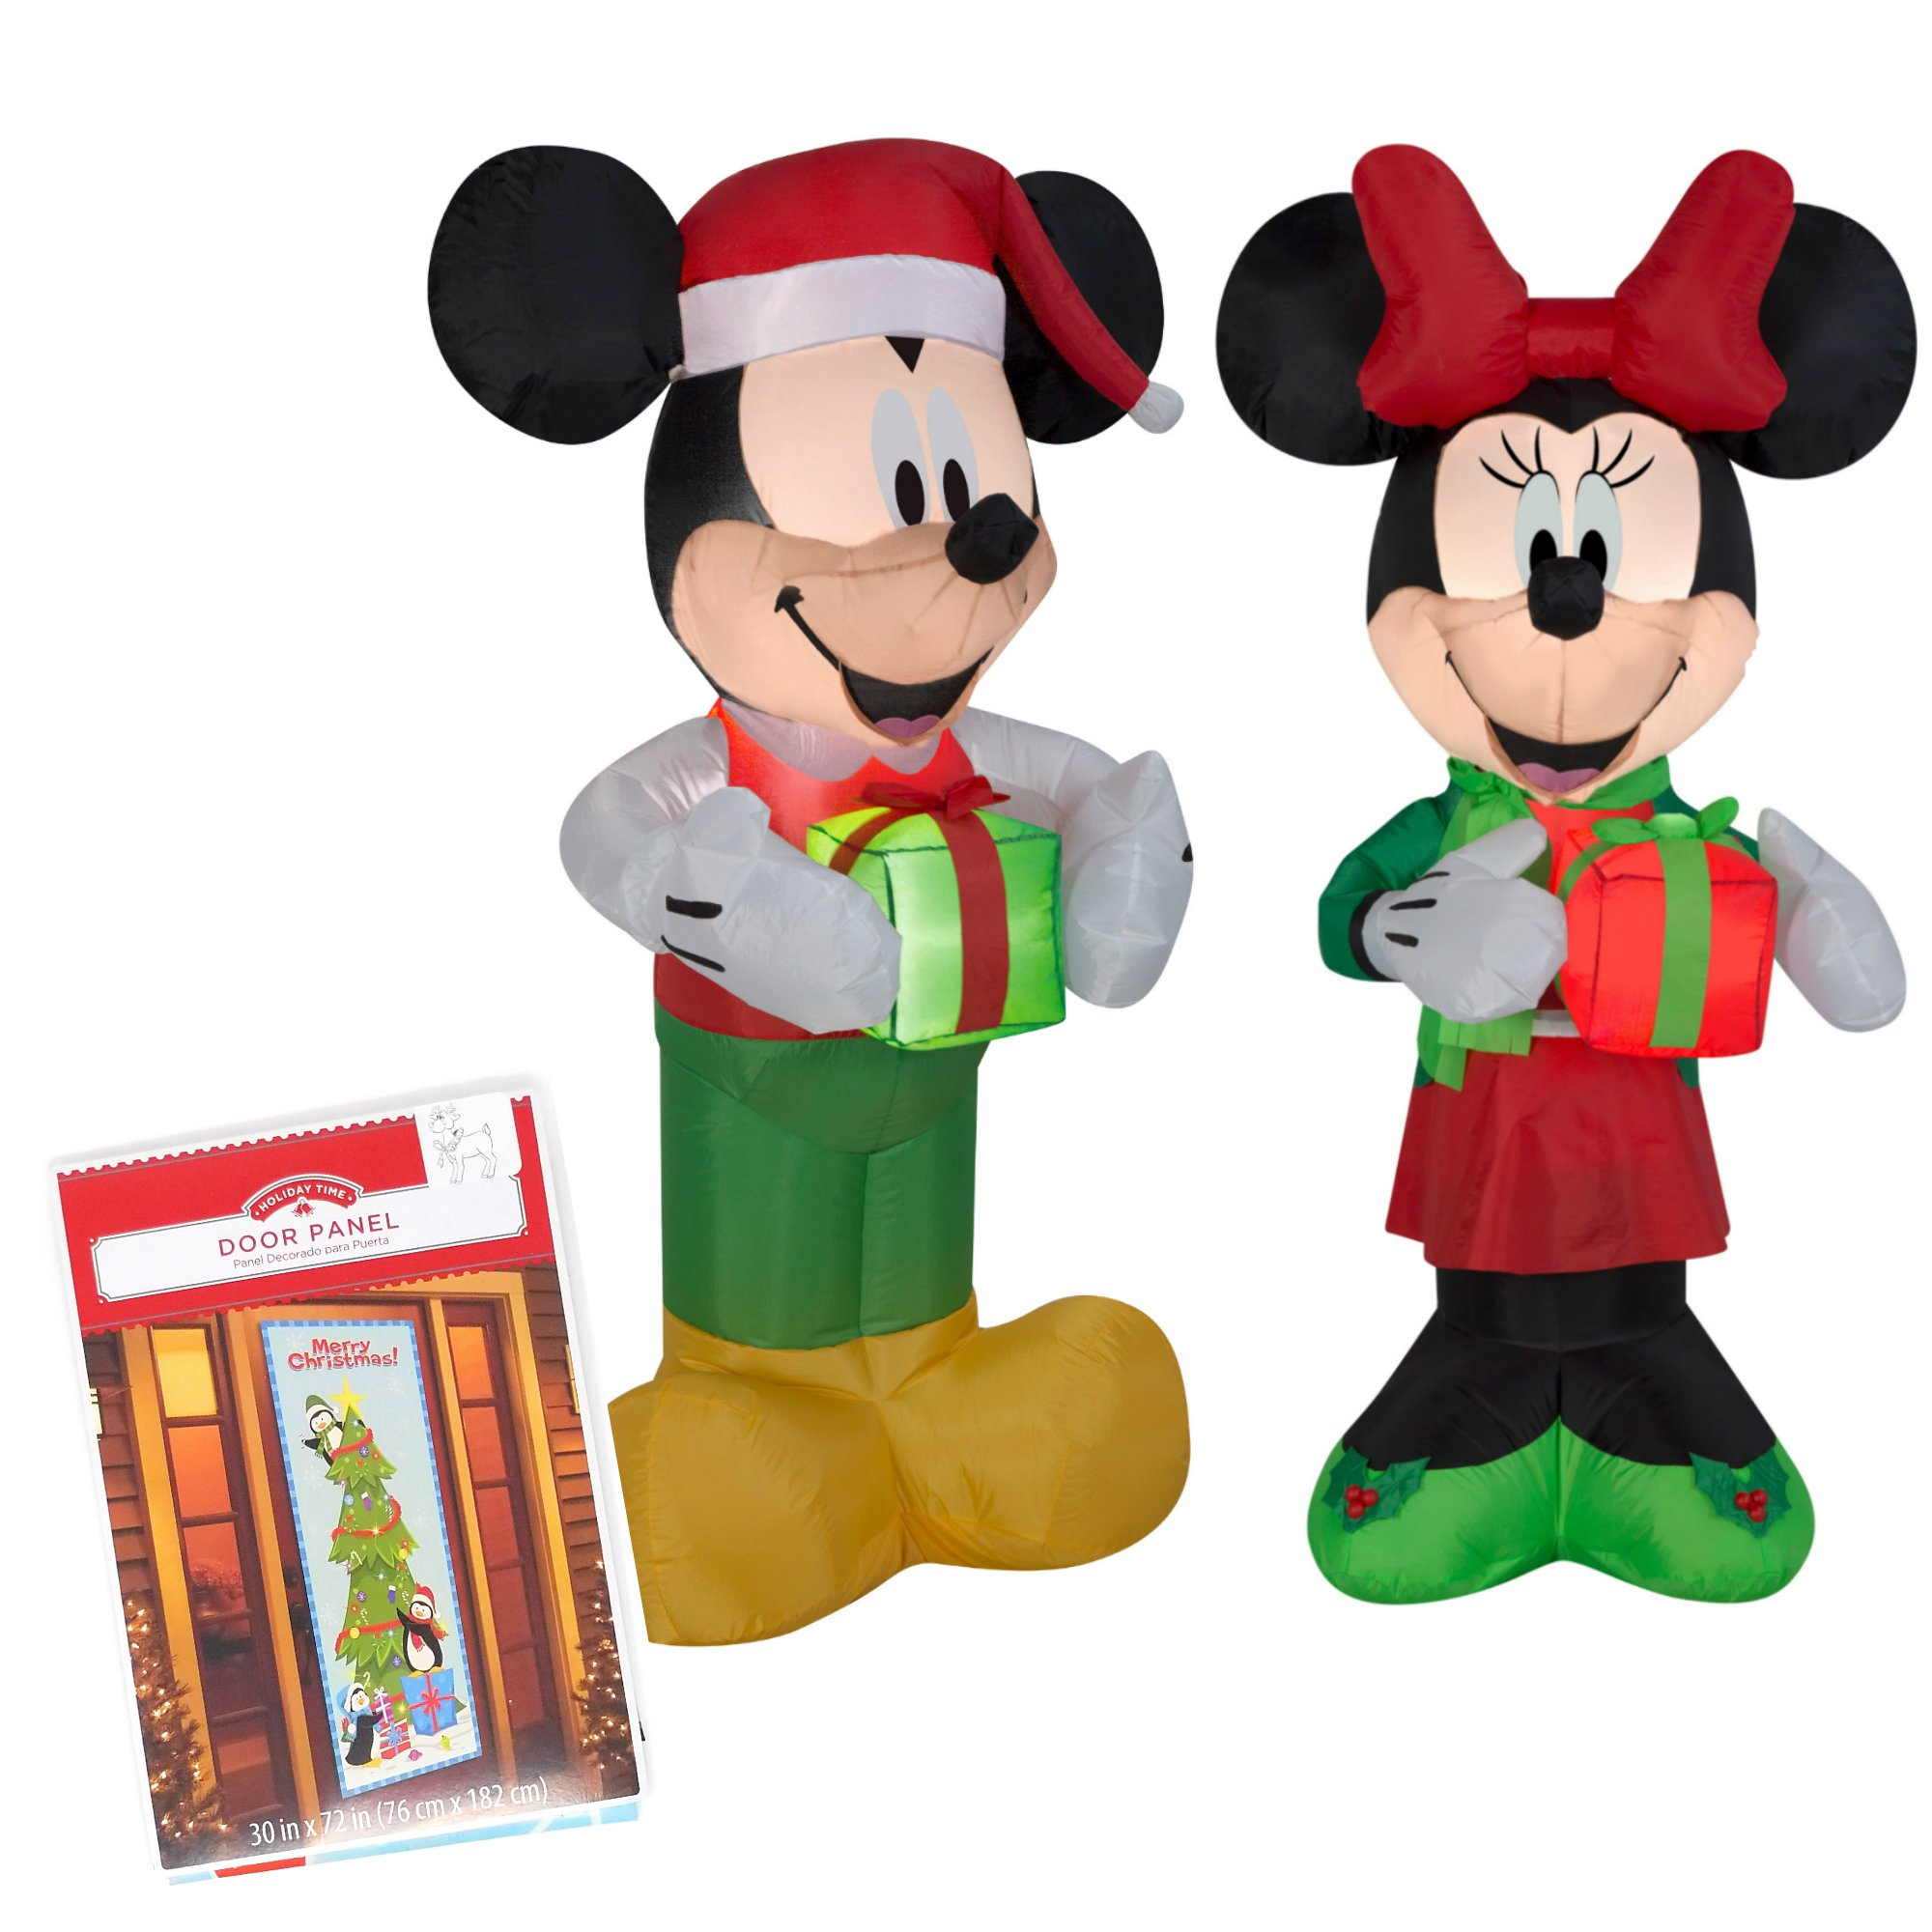 Inflatable Mickey And Minnie Christmas Yard Decorations, 5 Feet Tall, Self Inflatable With Energy Efficient LED, Bundled With Cute Door Covering by GemmyIndusteries and HolidayTime